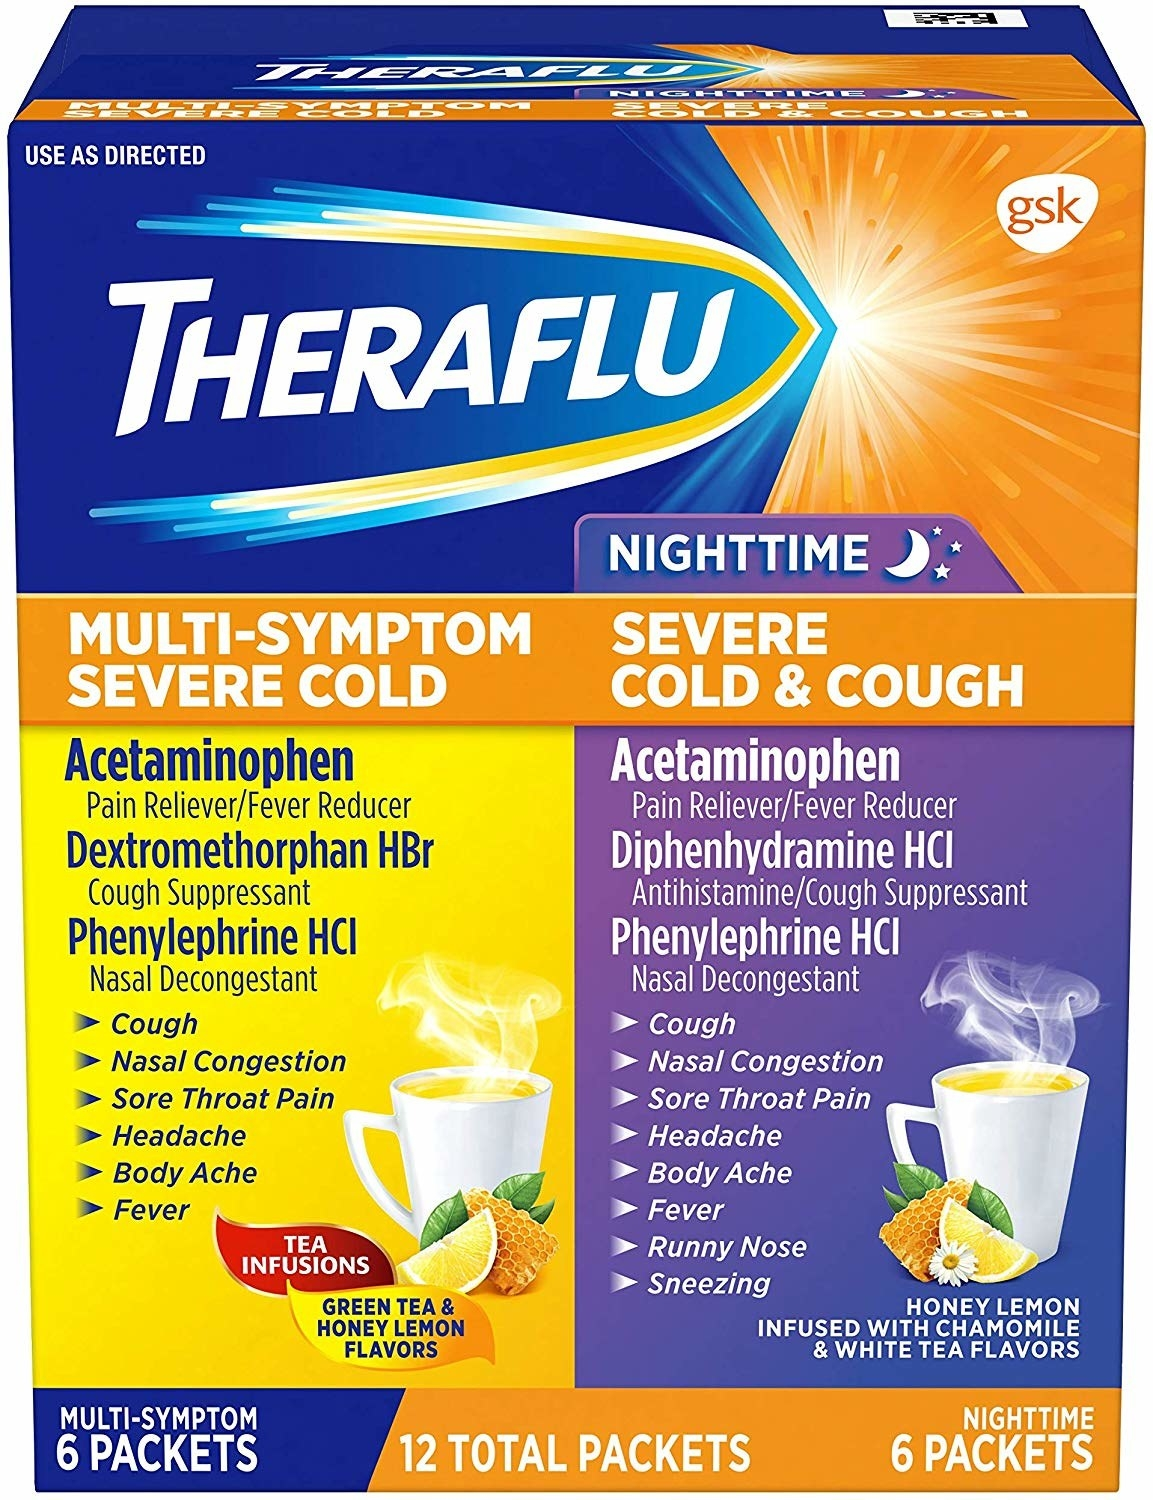 Box of Theraflu